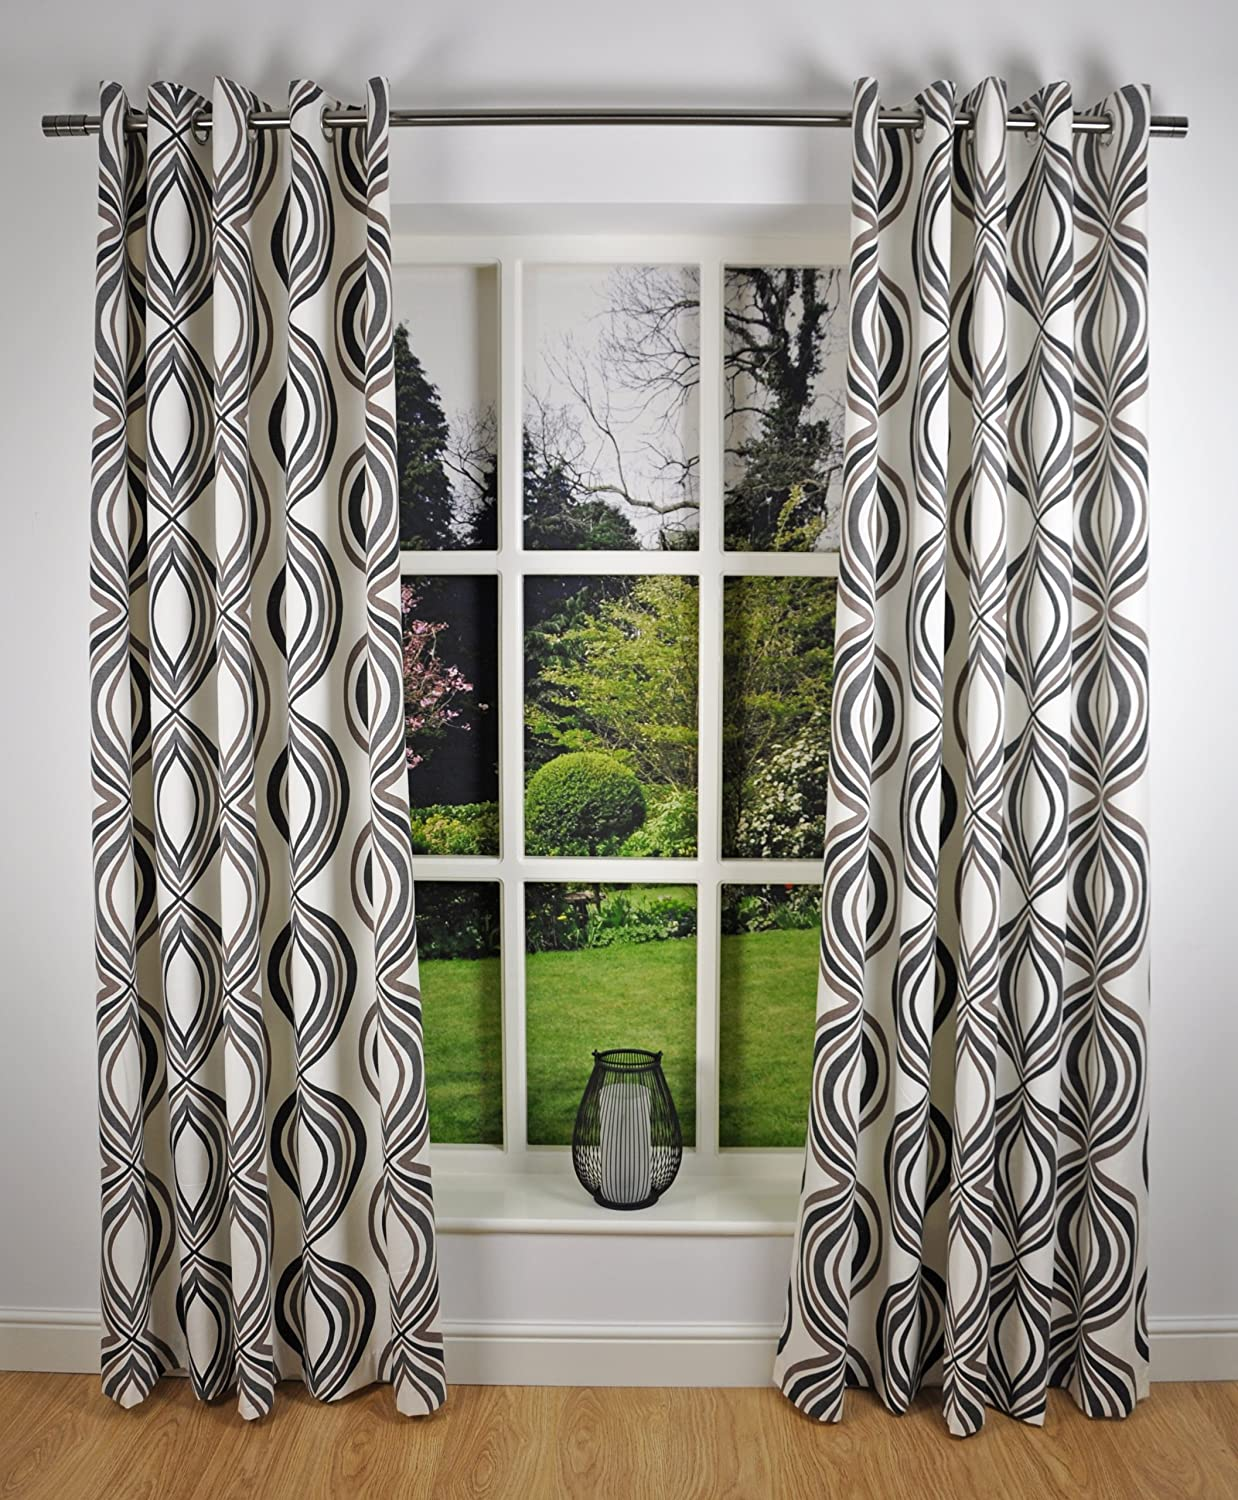 Retro Modern Geometric Print Readymade Lined Eyelet Curtains Chocolate Brown Cream